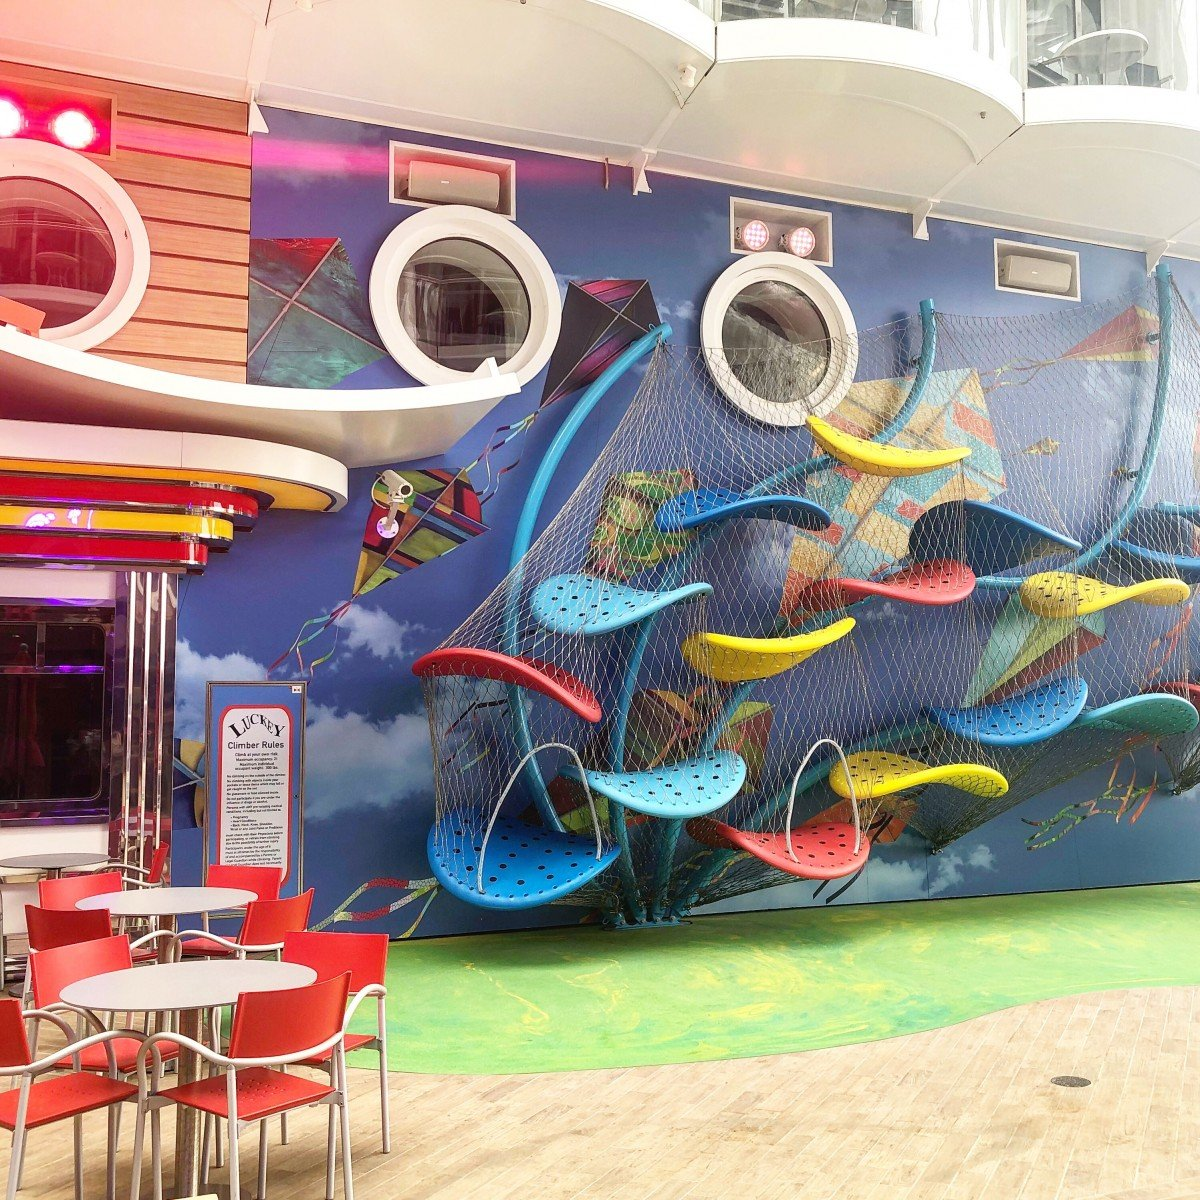 Kids Climbing Frame on the boardwalk Oasis Class royal Caribbean